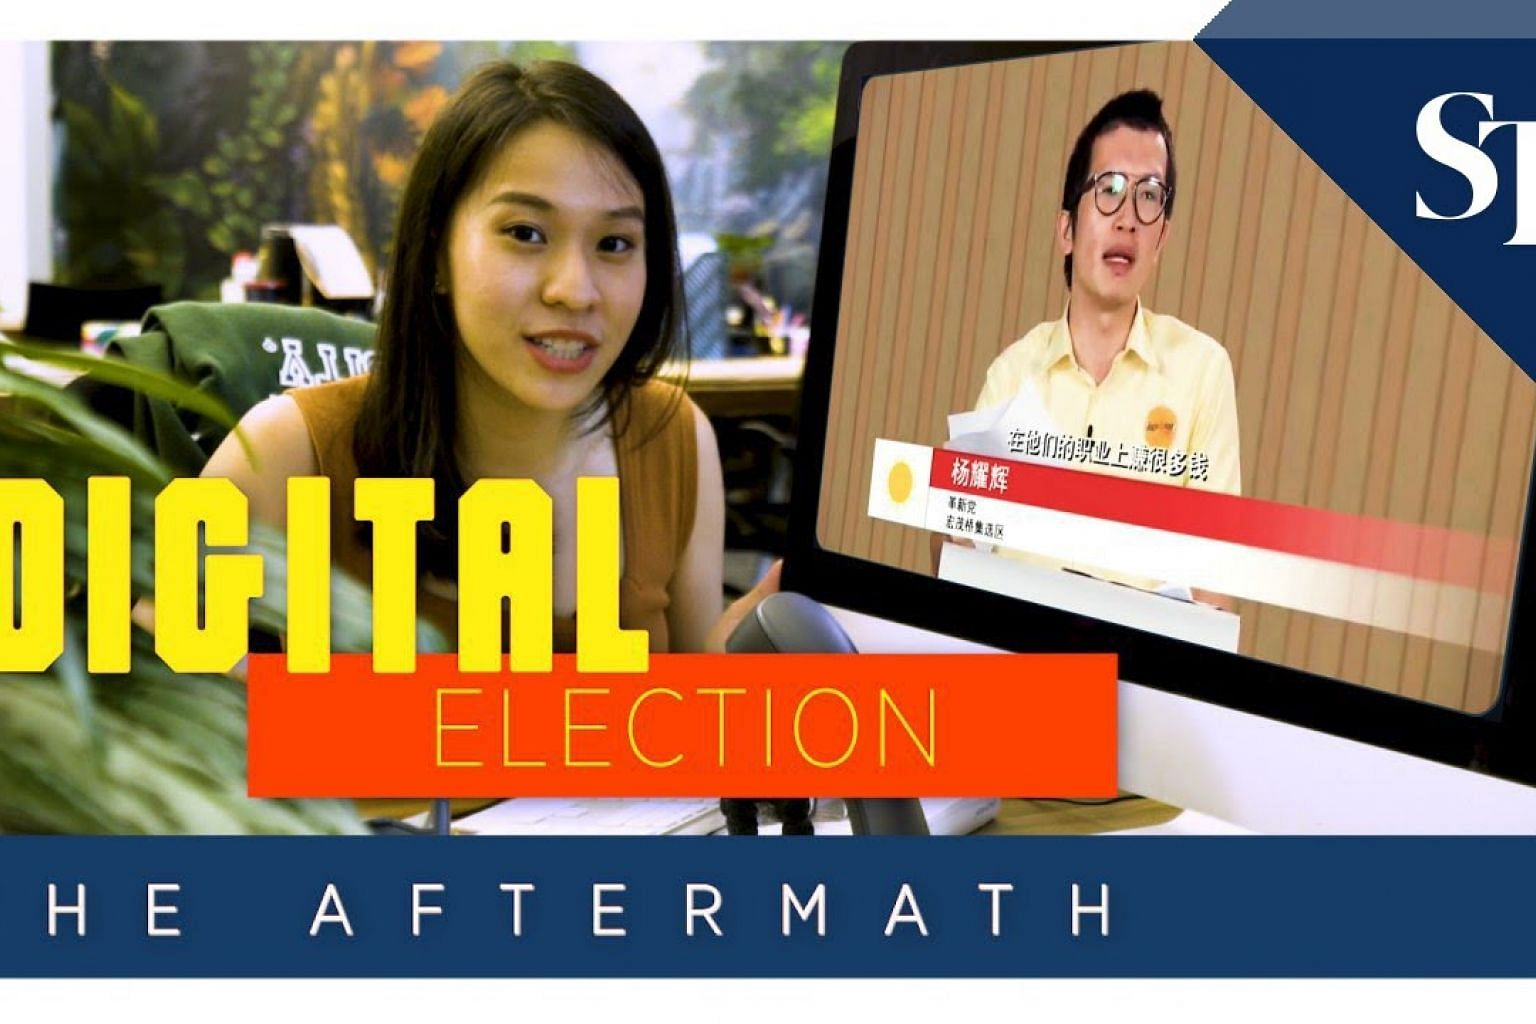 GE2020: The aftermath of Singapore's first digital election | The Straits Times